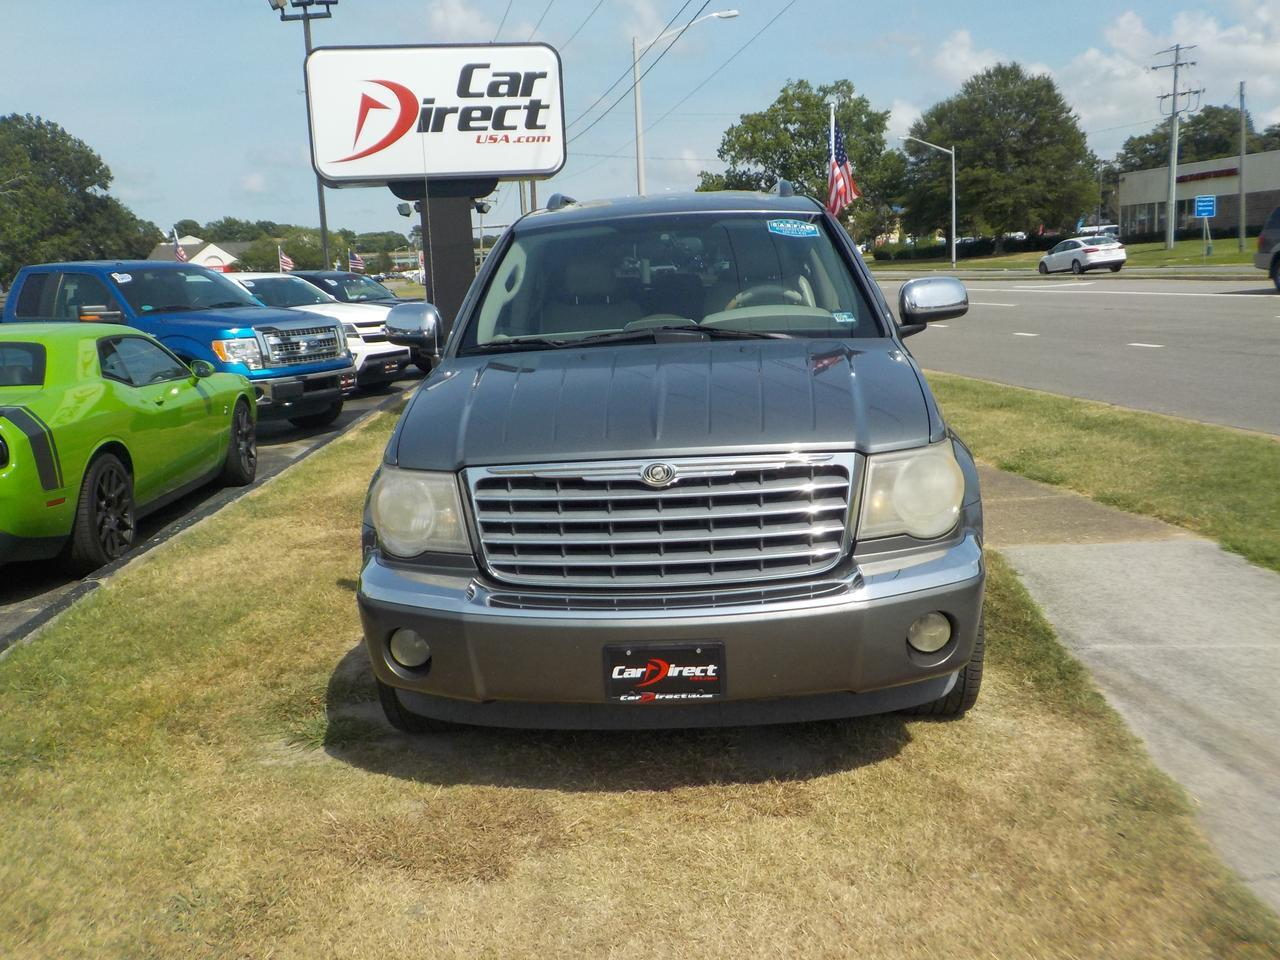 2007 CHRYSLER ASPEN LIMITED 4X4, WHOLESALE TO THE PUBLIC, LEATHER, 3RD ROW, HEATED/COOLED SEATS, CLEAN CARFAX! Virginia Beach VA